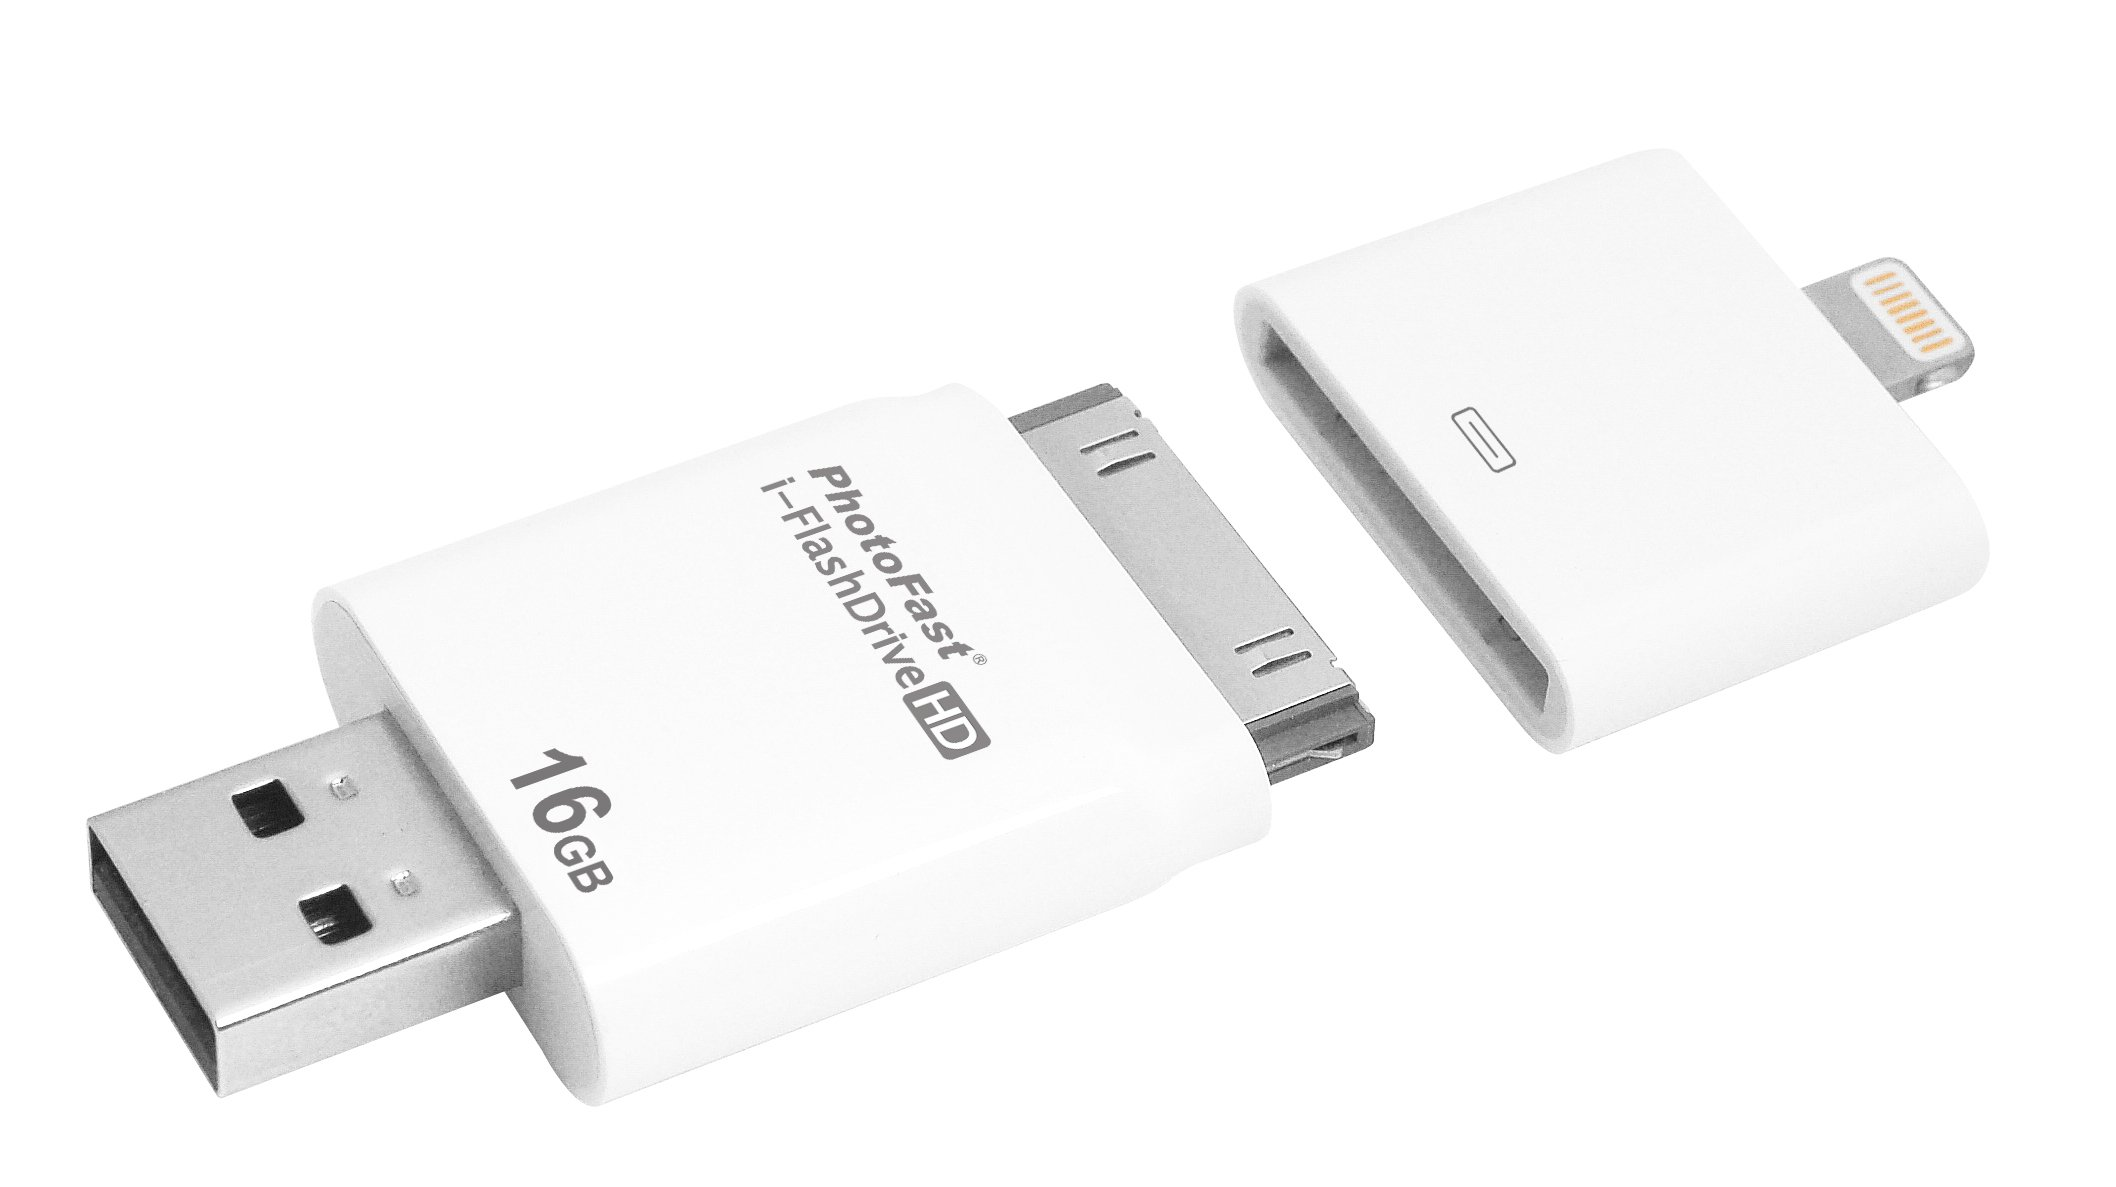 PhotoFast i-FlashDrive HD 16GB Dual Storage for all iOS Devices (IFD04A16GB) by PhotoFast (Image #6)